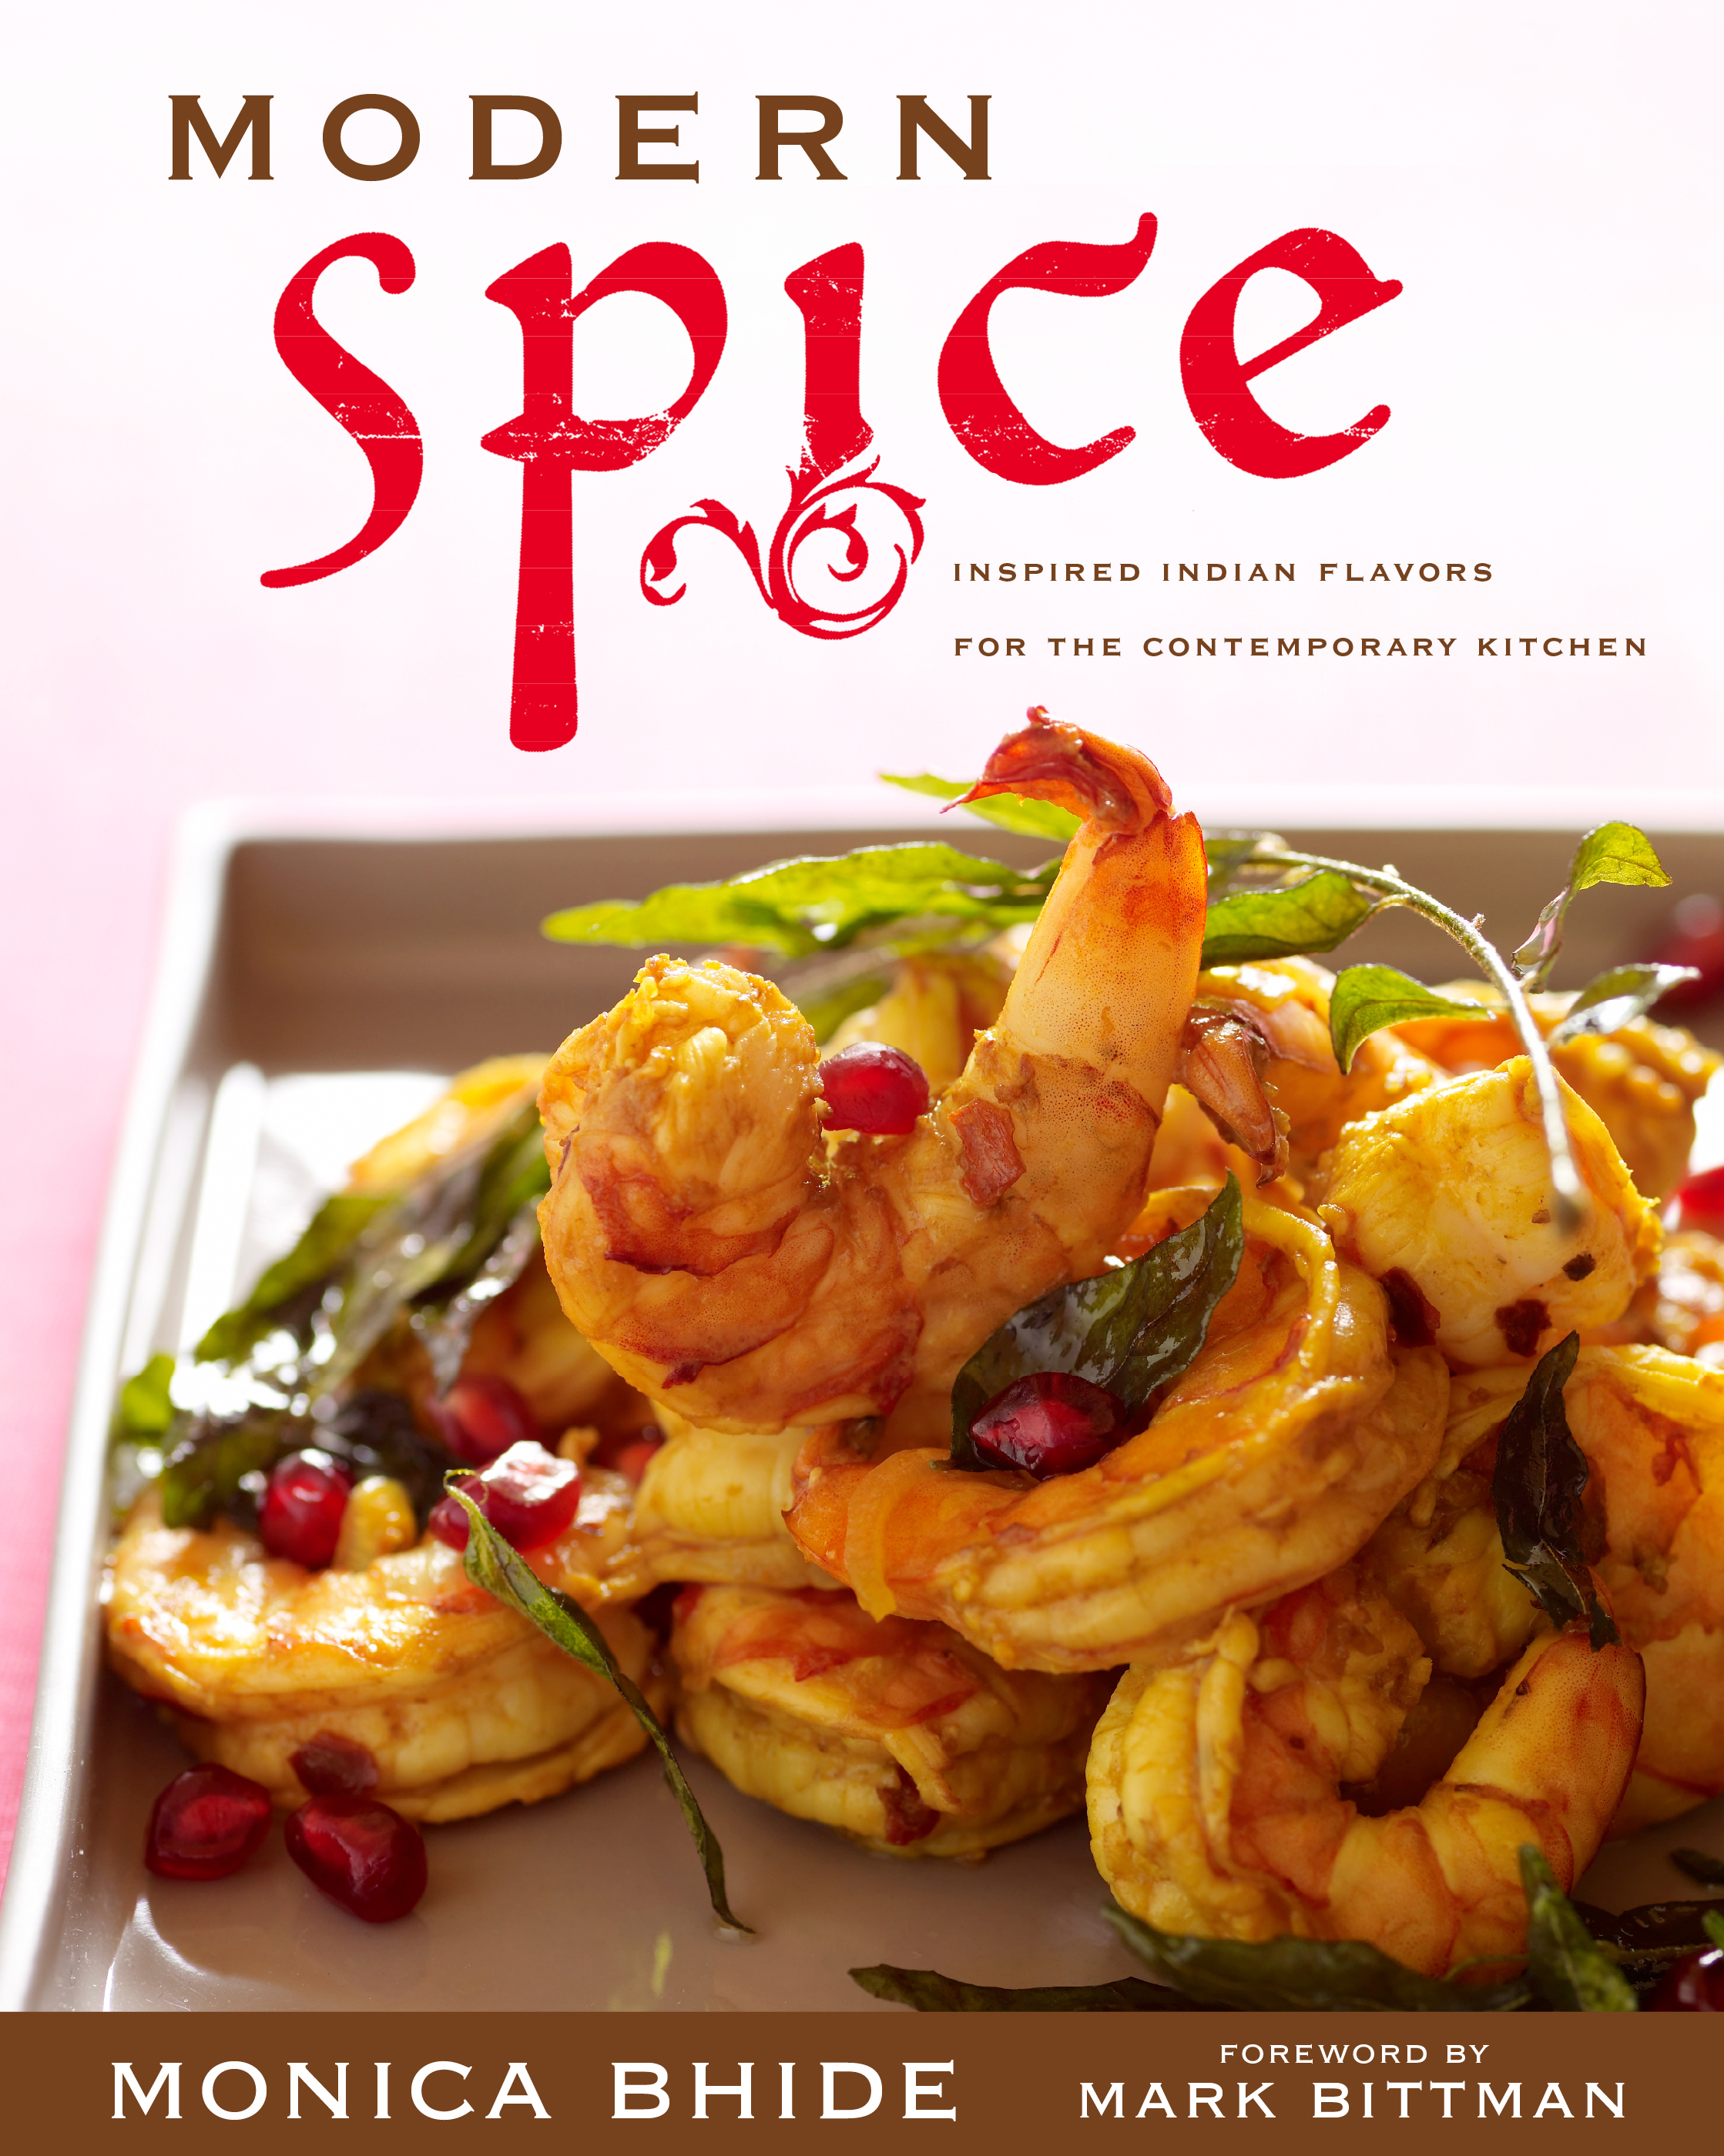 Mark bittman official publisher page simon schuster canada book cover image jpg modern spice forumfinder Image collections